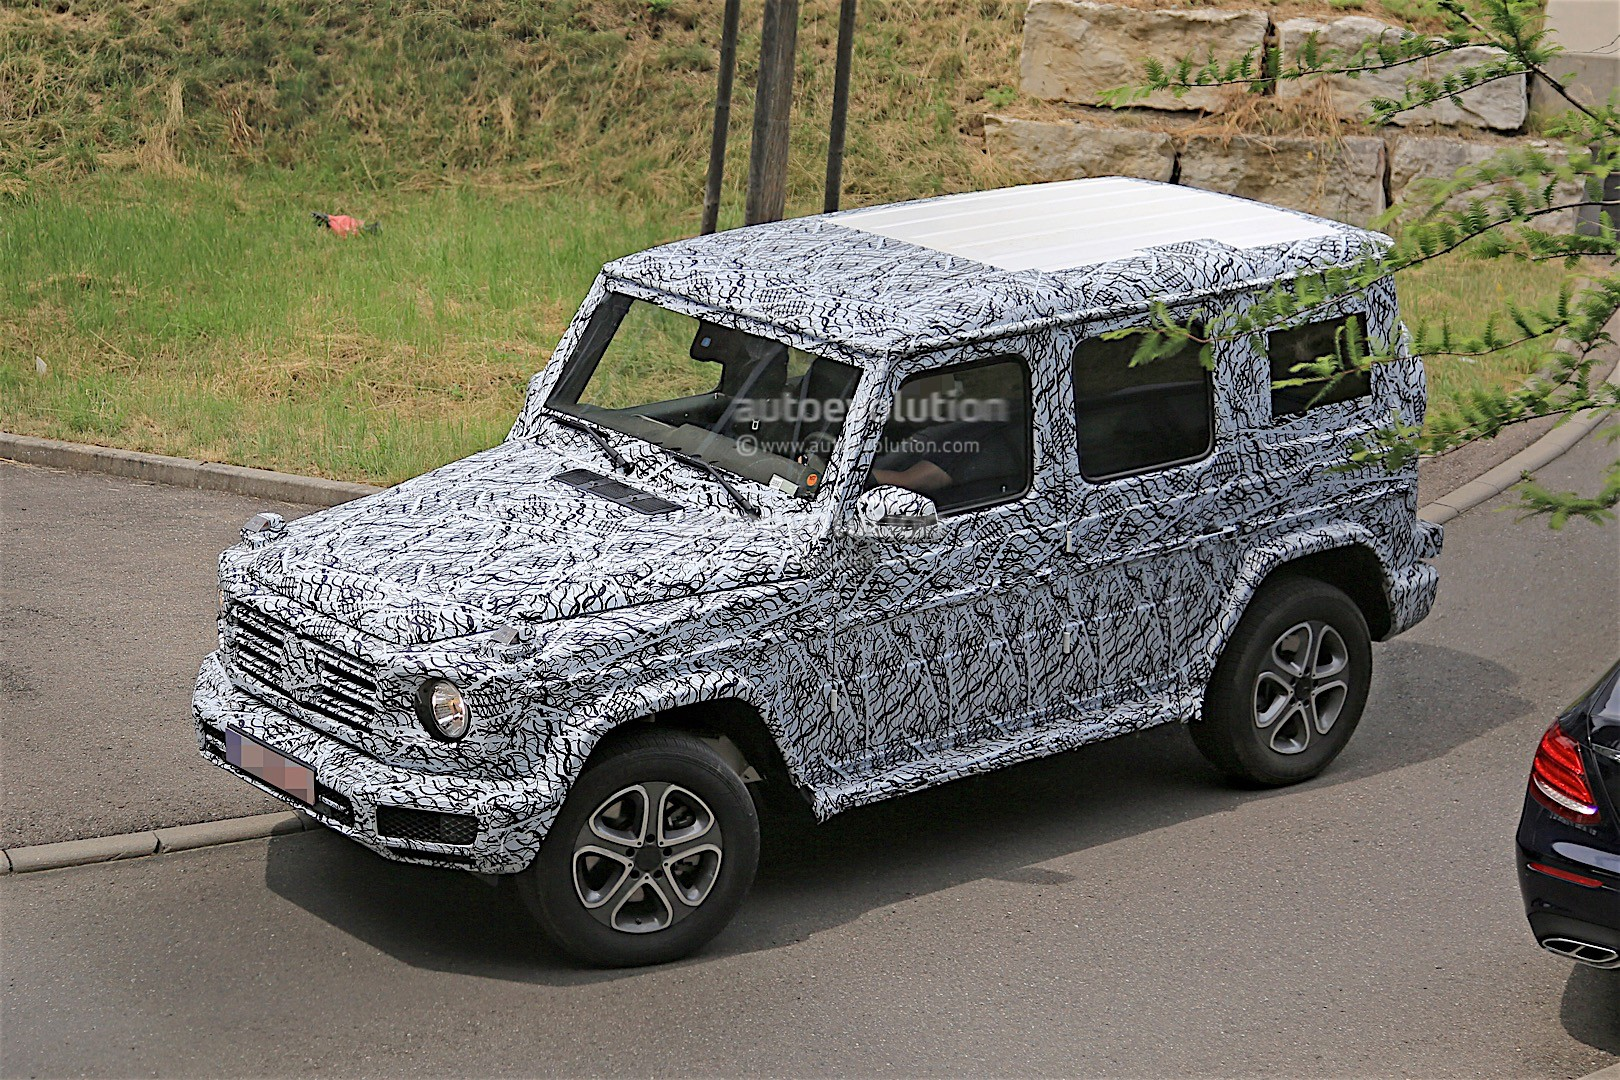 2017 - [Mercedes-Benz] Classe G II - Page 2 2018-mercedes-g-class-prototype-spied-on-the-road-sounds-like-a-v8_5